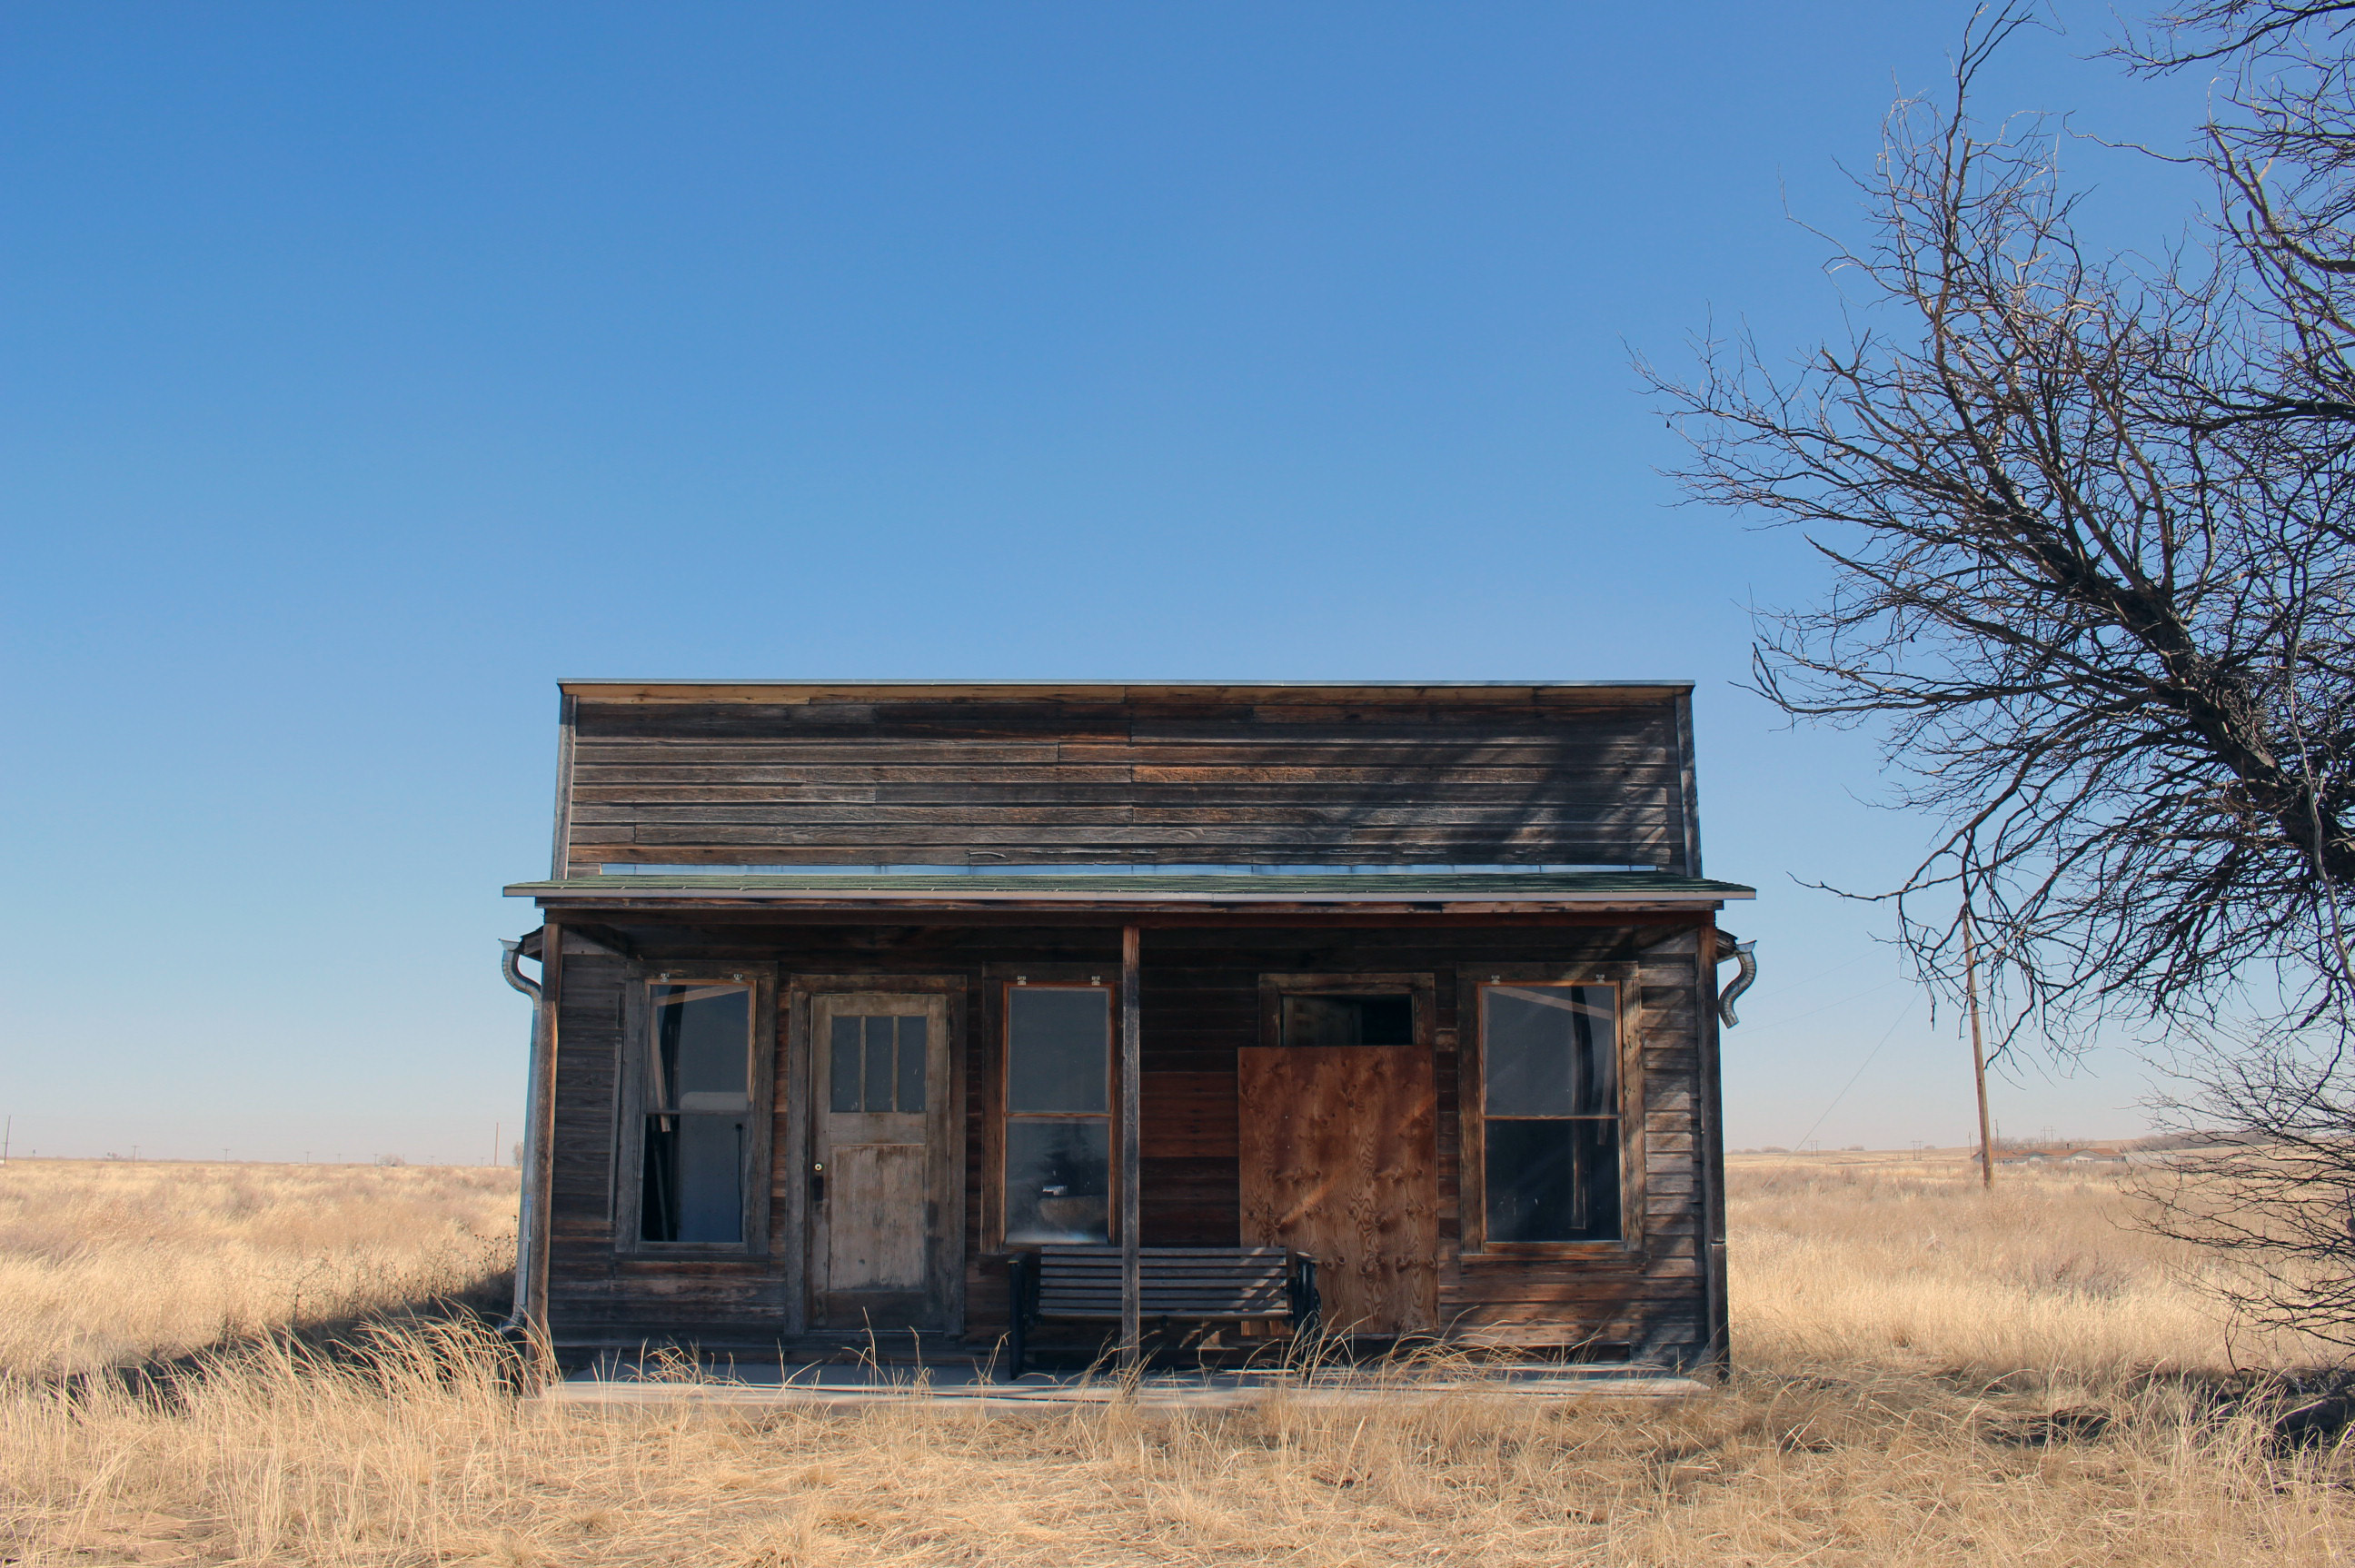 A Forgotten Piece Of African-American History On The Great Plains